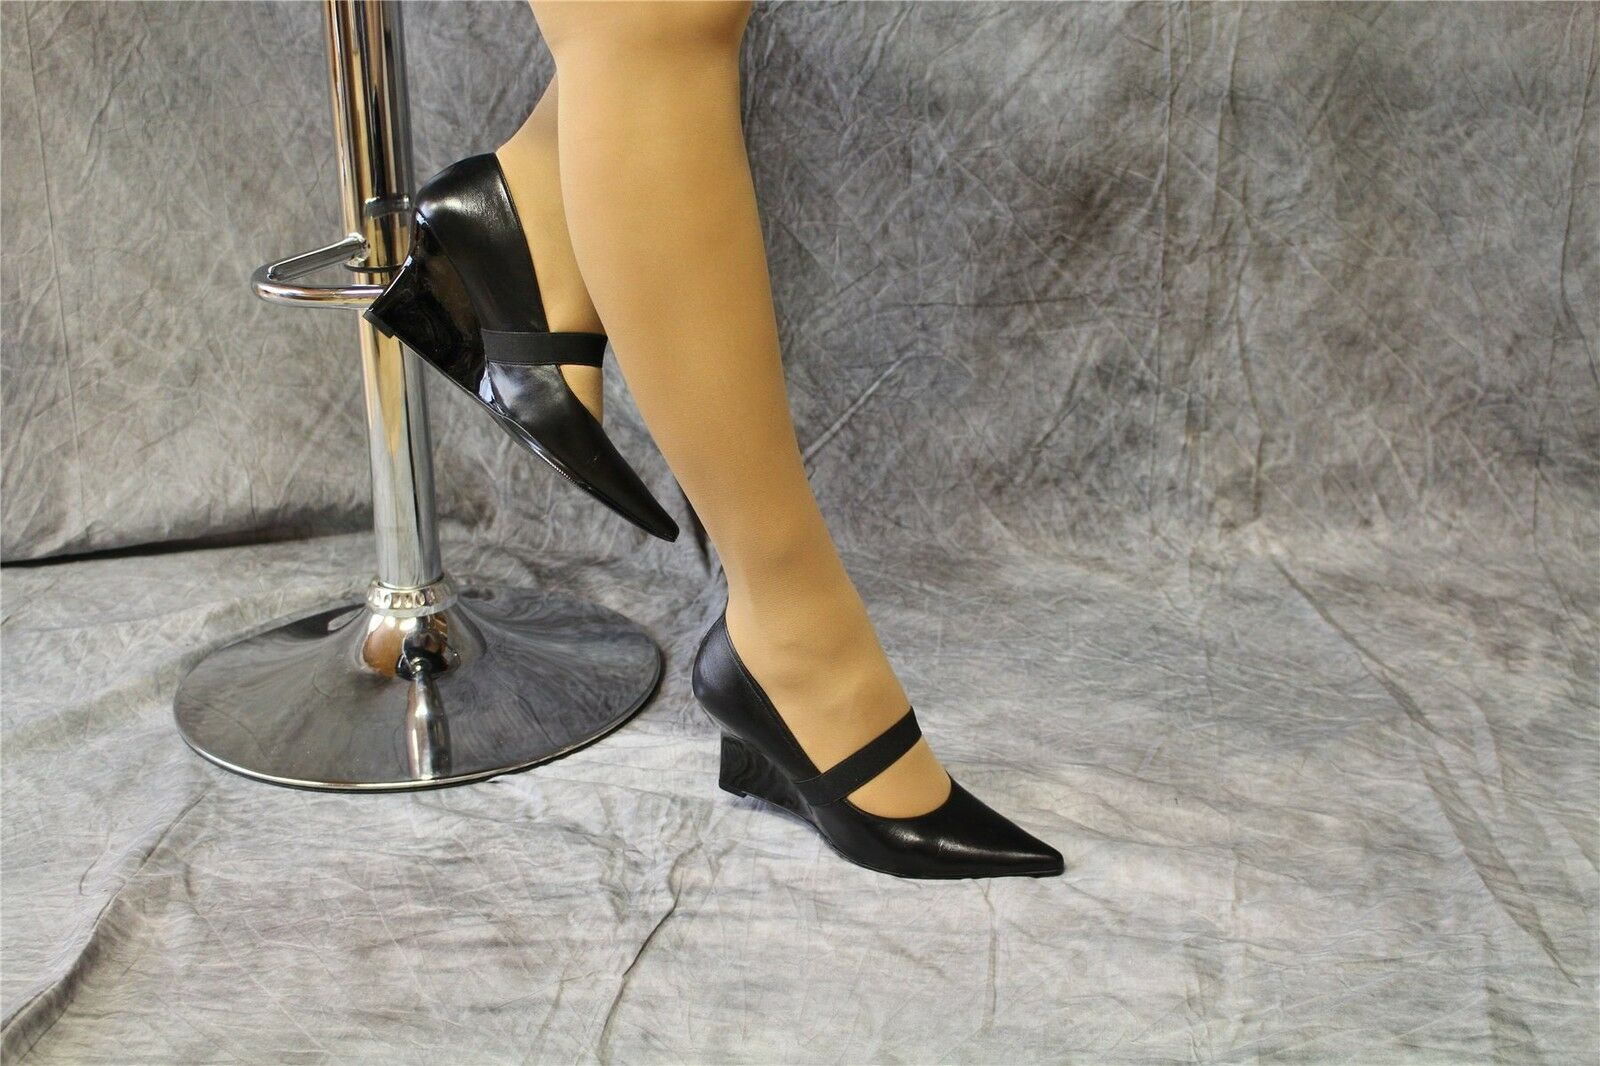 blacke Wedges Lederpumps mit extravagantem Lackabsatz